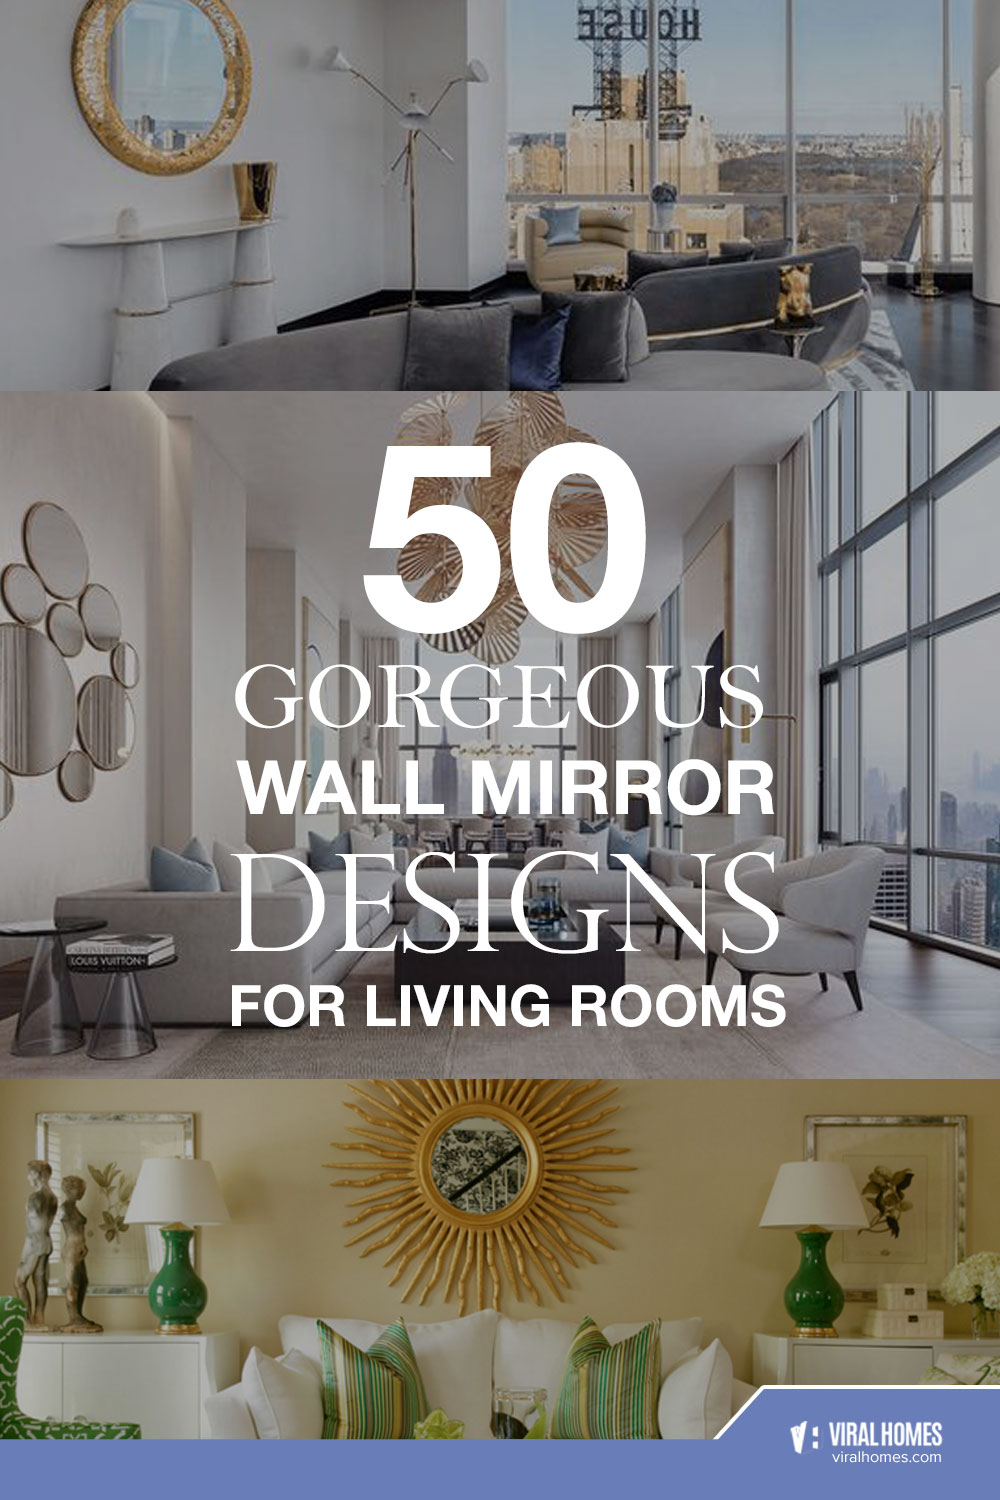 55 Gorgeous Wall Mirror Designs For Living Rooms